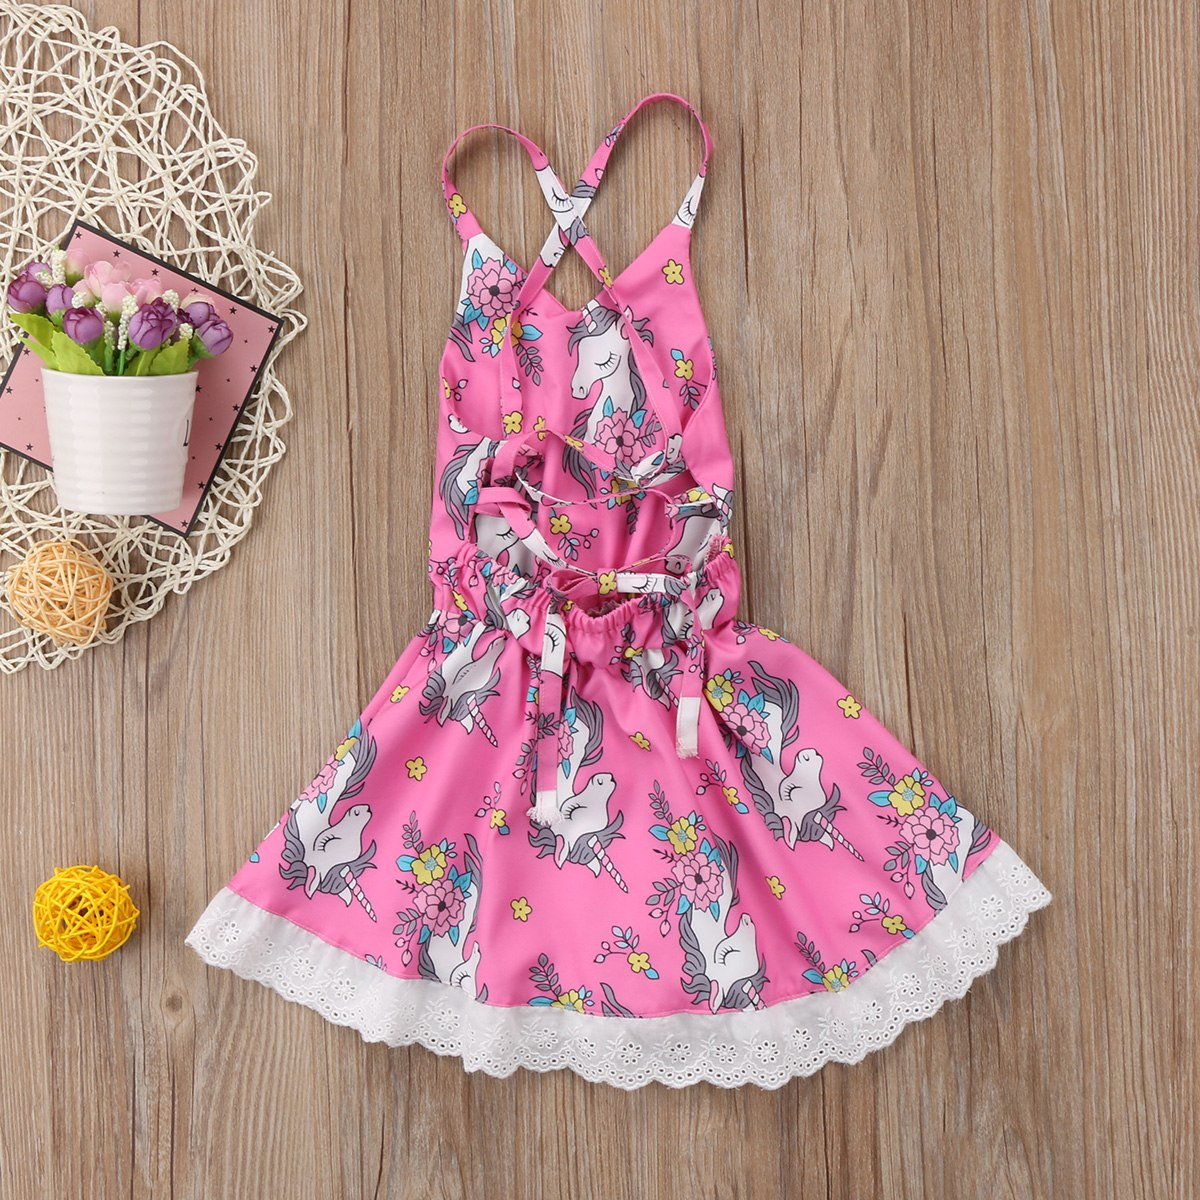 US 1-6T Kids Baby Girls Unicorn Cartoon Backless Party Pageant Dress Clothes